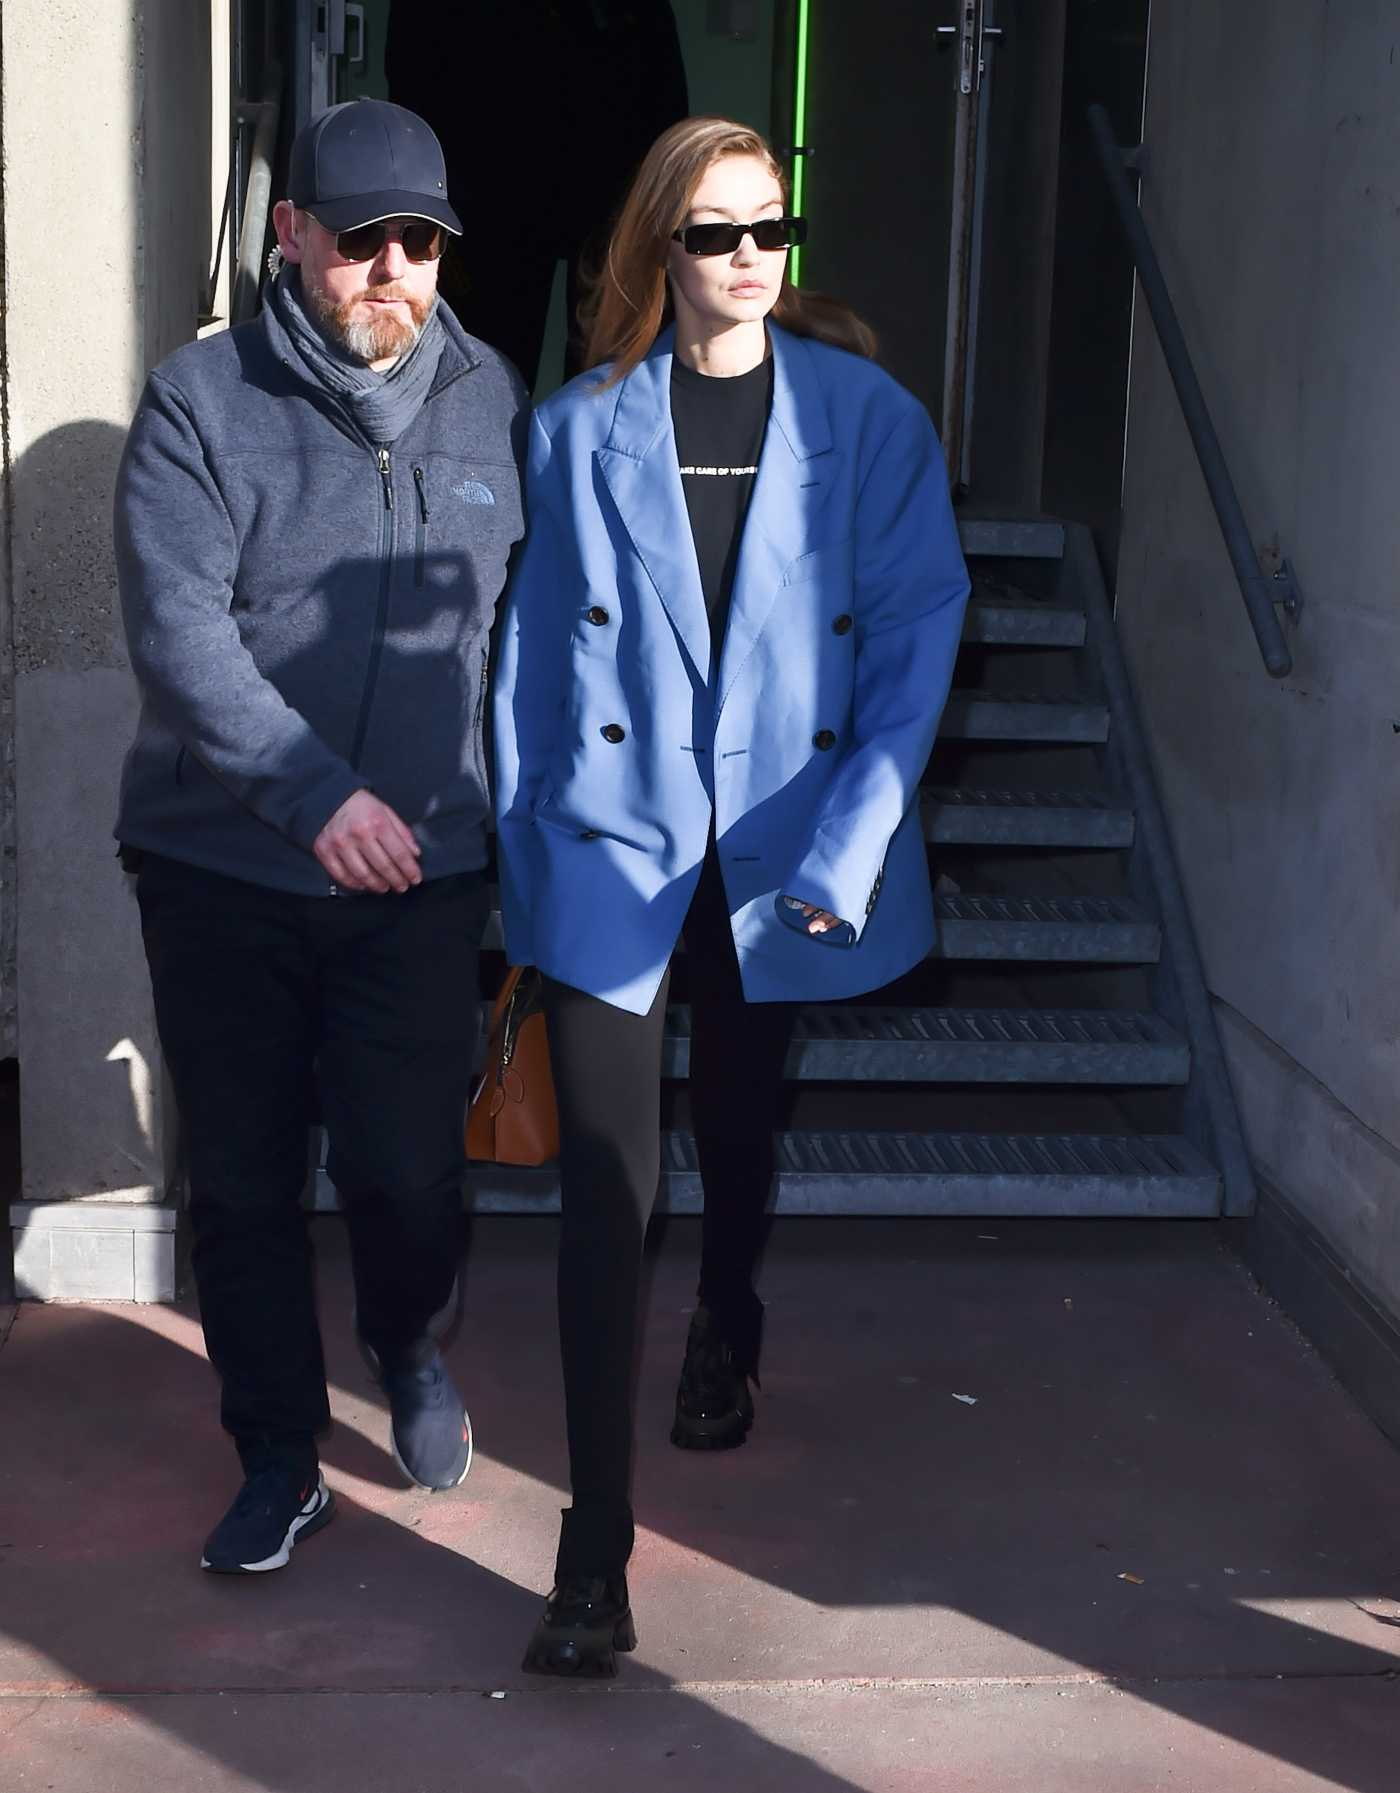 Gigi Hadid in a Blue Blazer Was Seen Out in Paris 01/19/2020